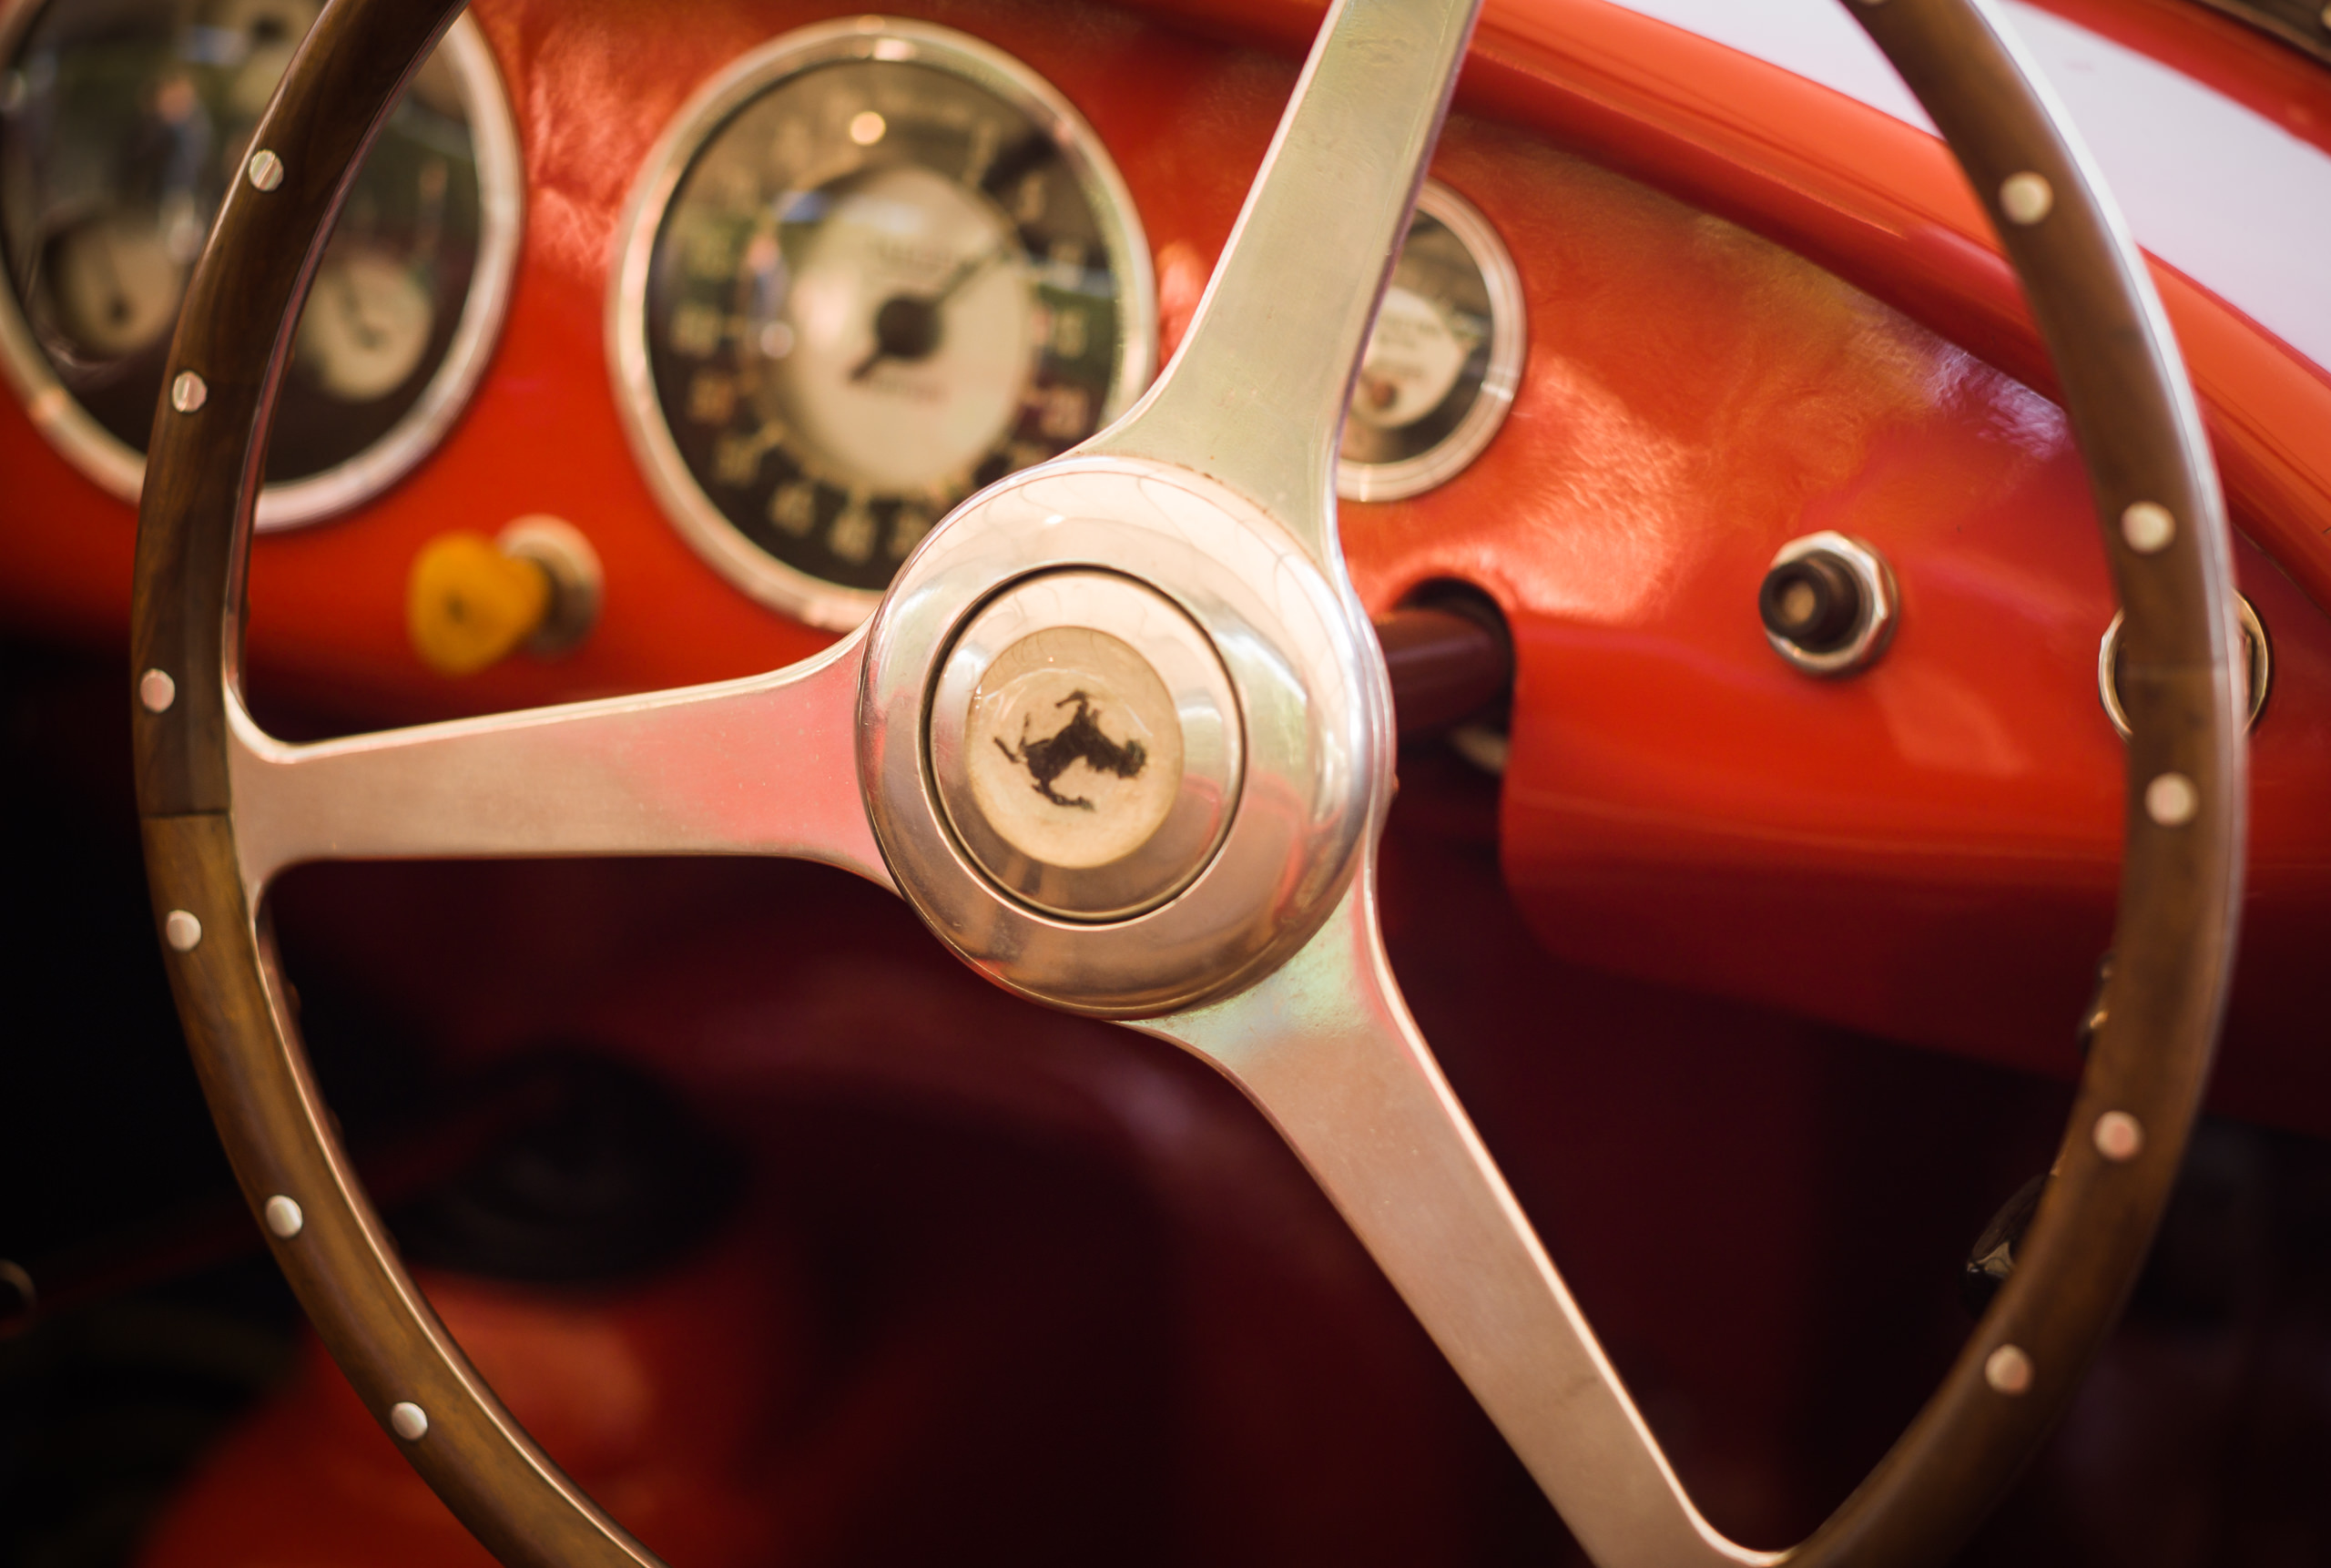 Wayfinder Workshop Goodwood Revival 75Mm Summicron Ferrari Steering Wheel By Brett Leica Photographer